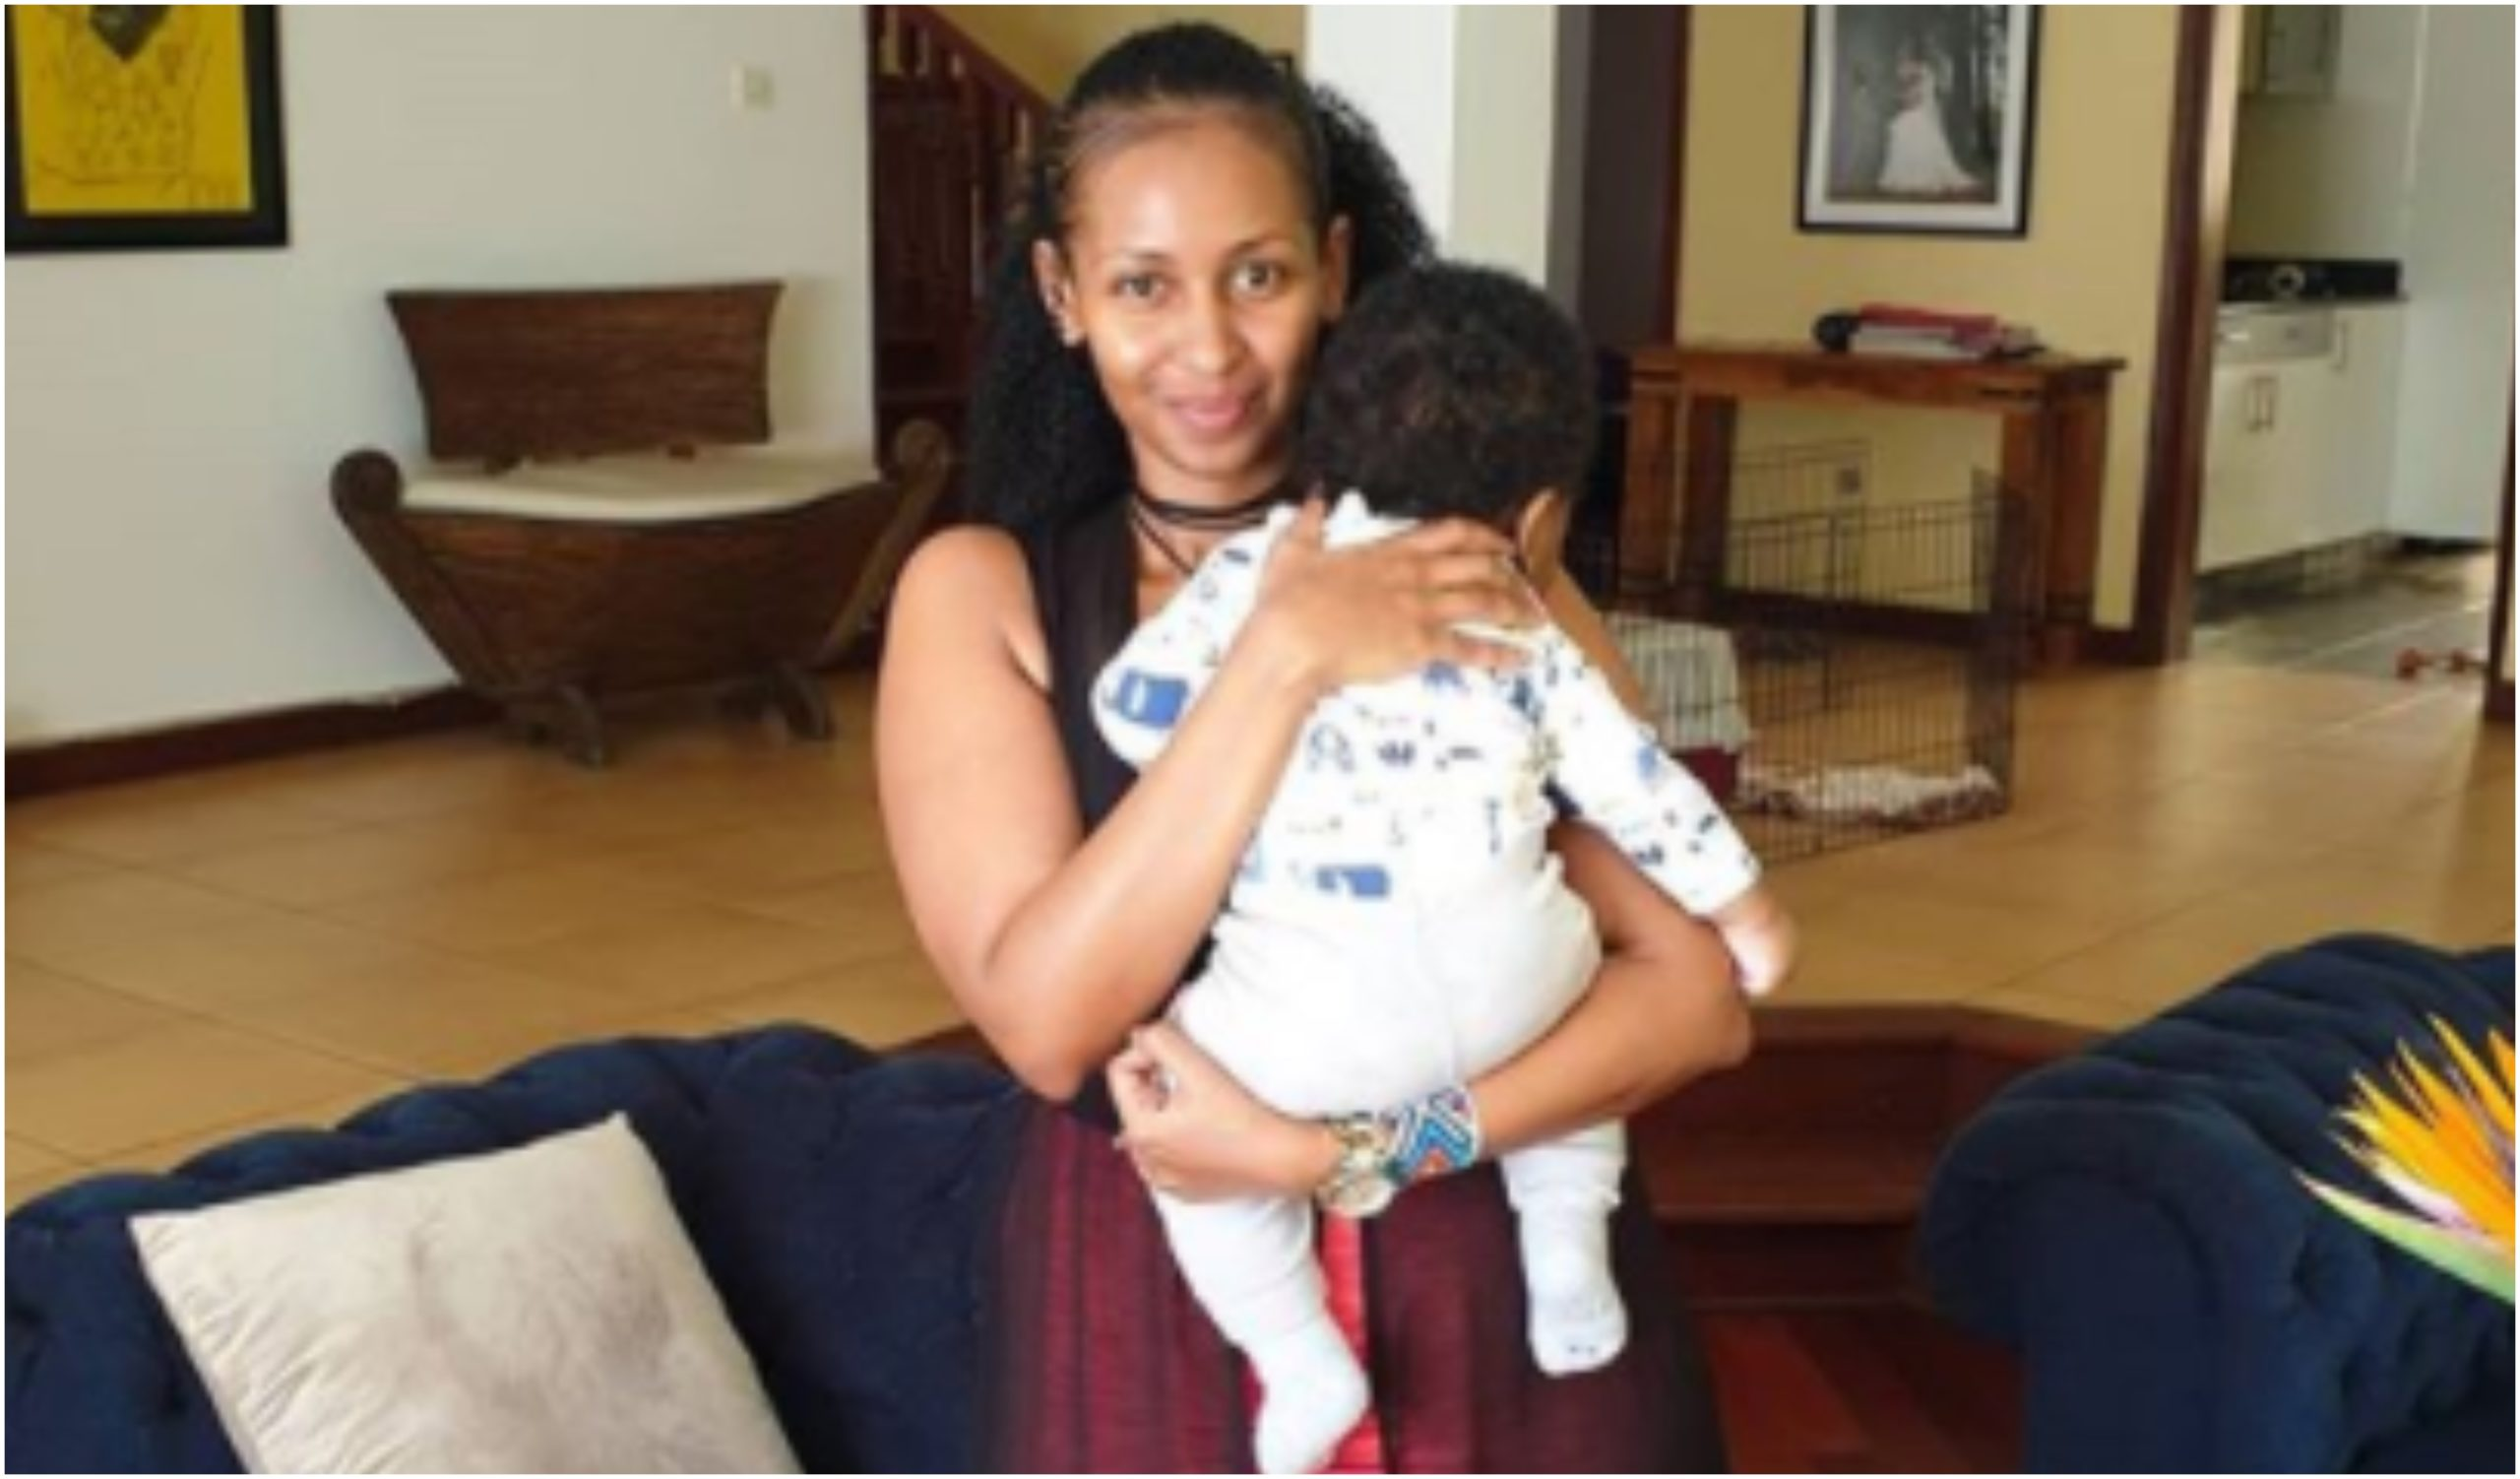 Sarah Hassan opens up on long traumatic experience breastfeeding her young son